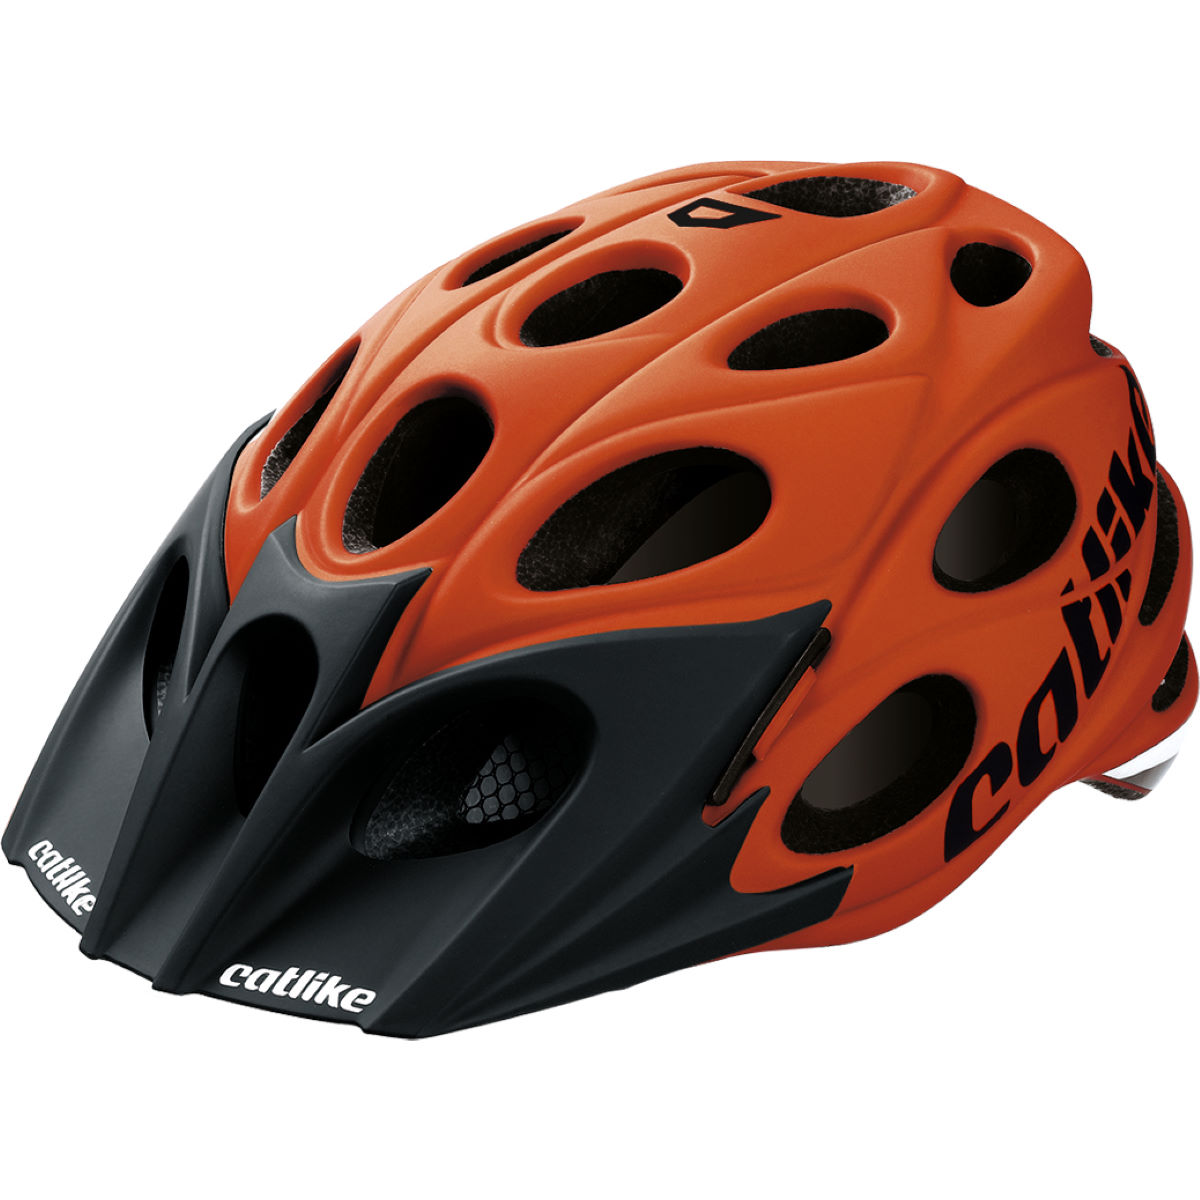 Casque VTT Catlike Leaf - M Matt Orange Casques VTT